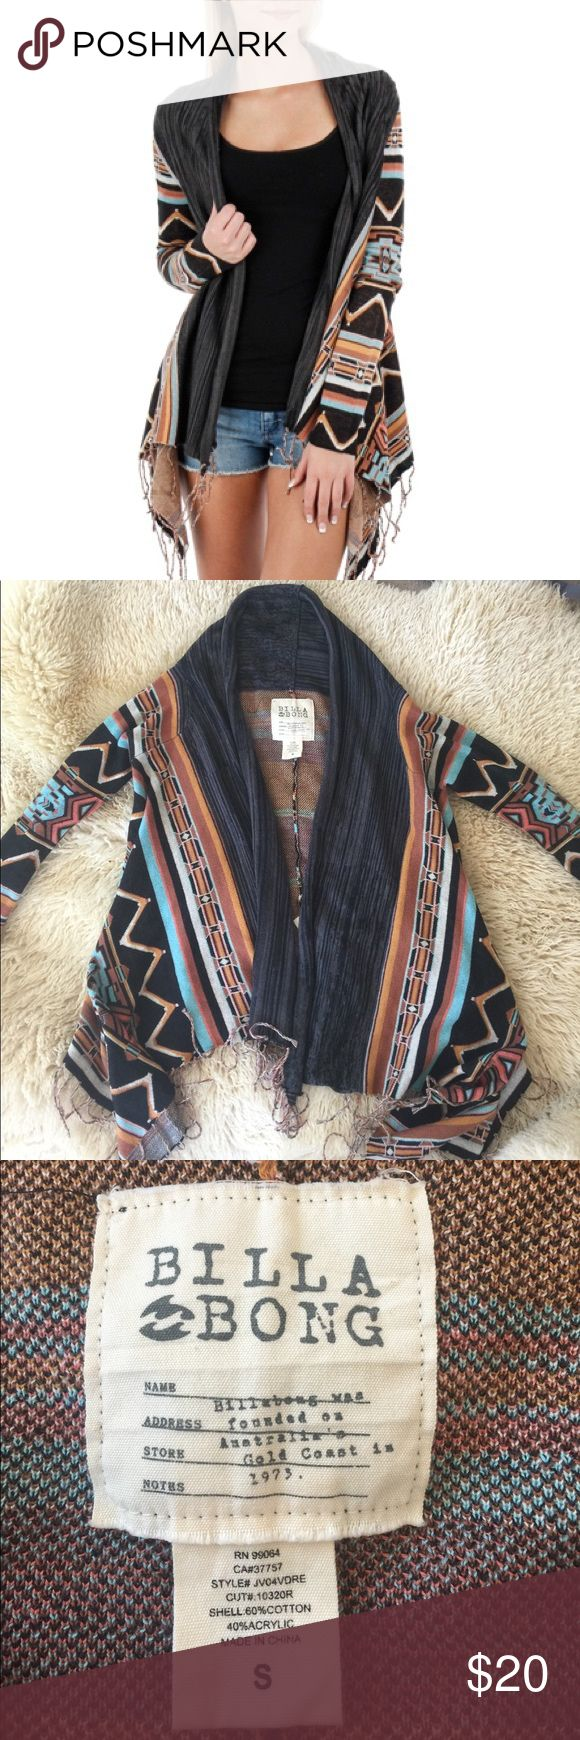 Billabong Dream Chaser Cardigan Tribal Print NWOT Billabong fringe wrap long sleeve, size small sweater, brown colorway with multicolor tribal print stripes throughout. Knit construction with fringe detaling at bottom hem. Has a handkerchief hemline, with flattering loose, draped fit. Small Billabong logo tag at back. 60% cotton, 40% acrylic. Size Small. Billabong Sweaters Cardigans